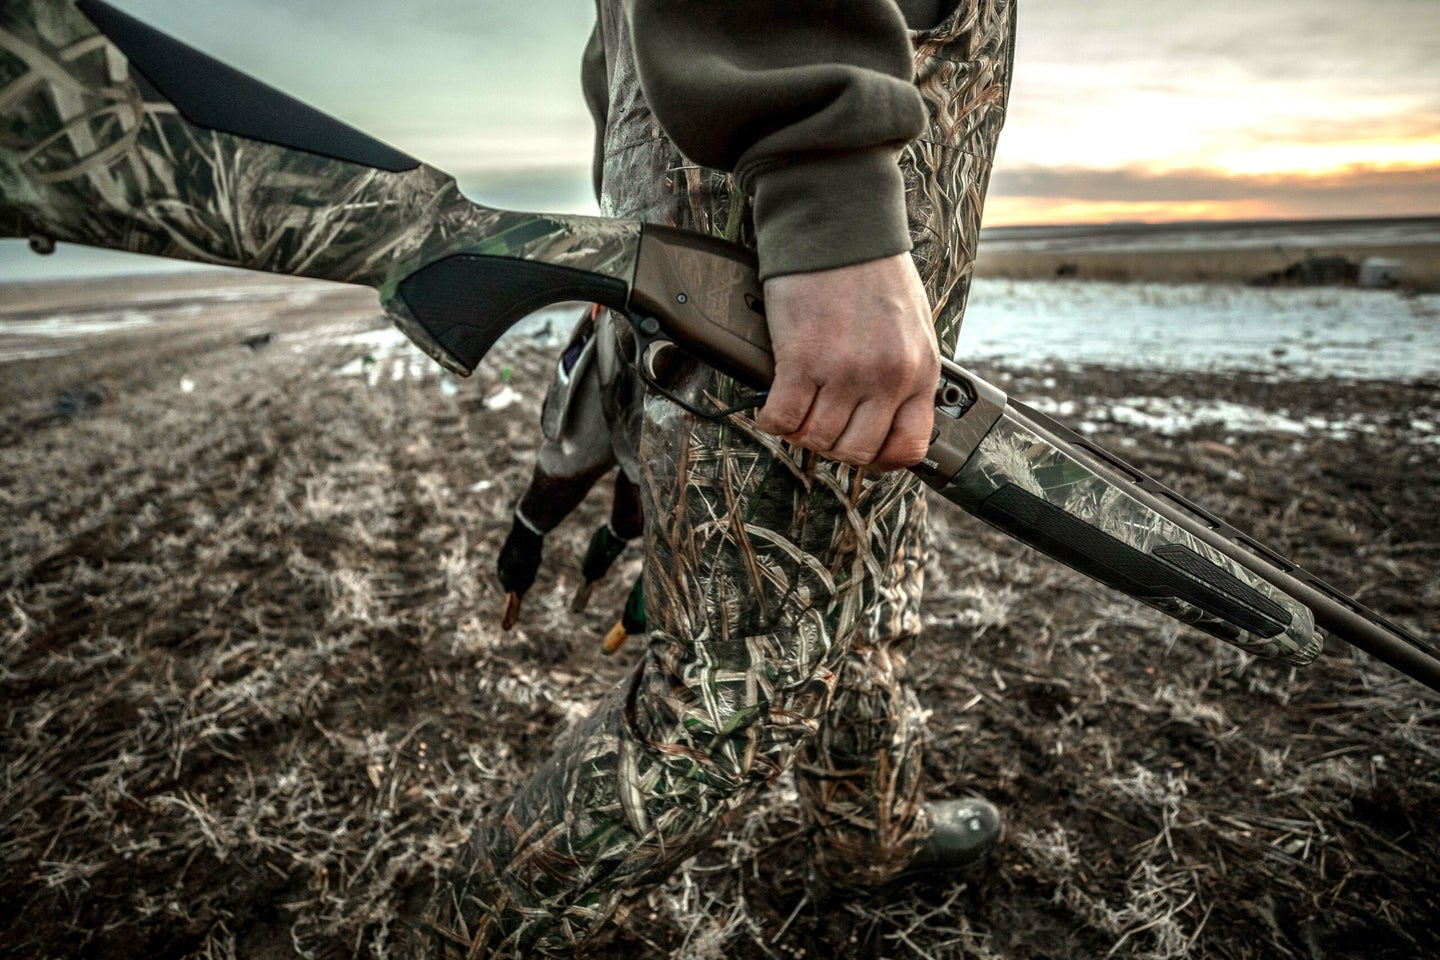 A hunter with the new Browning Maxus II shotgun